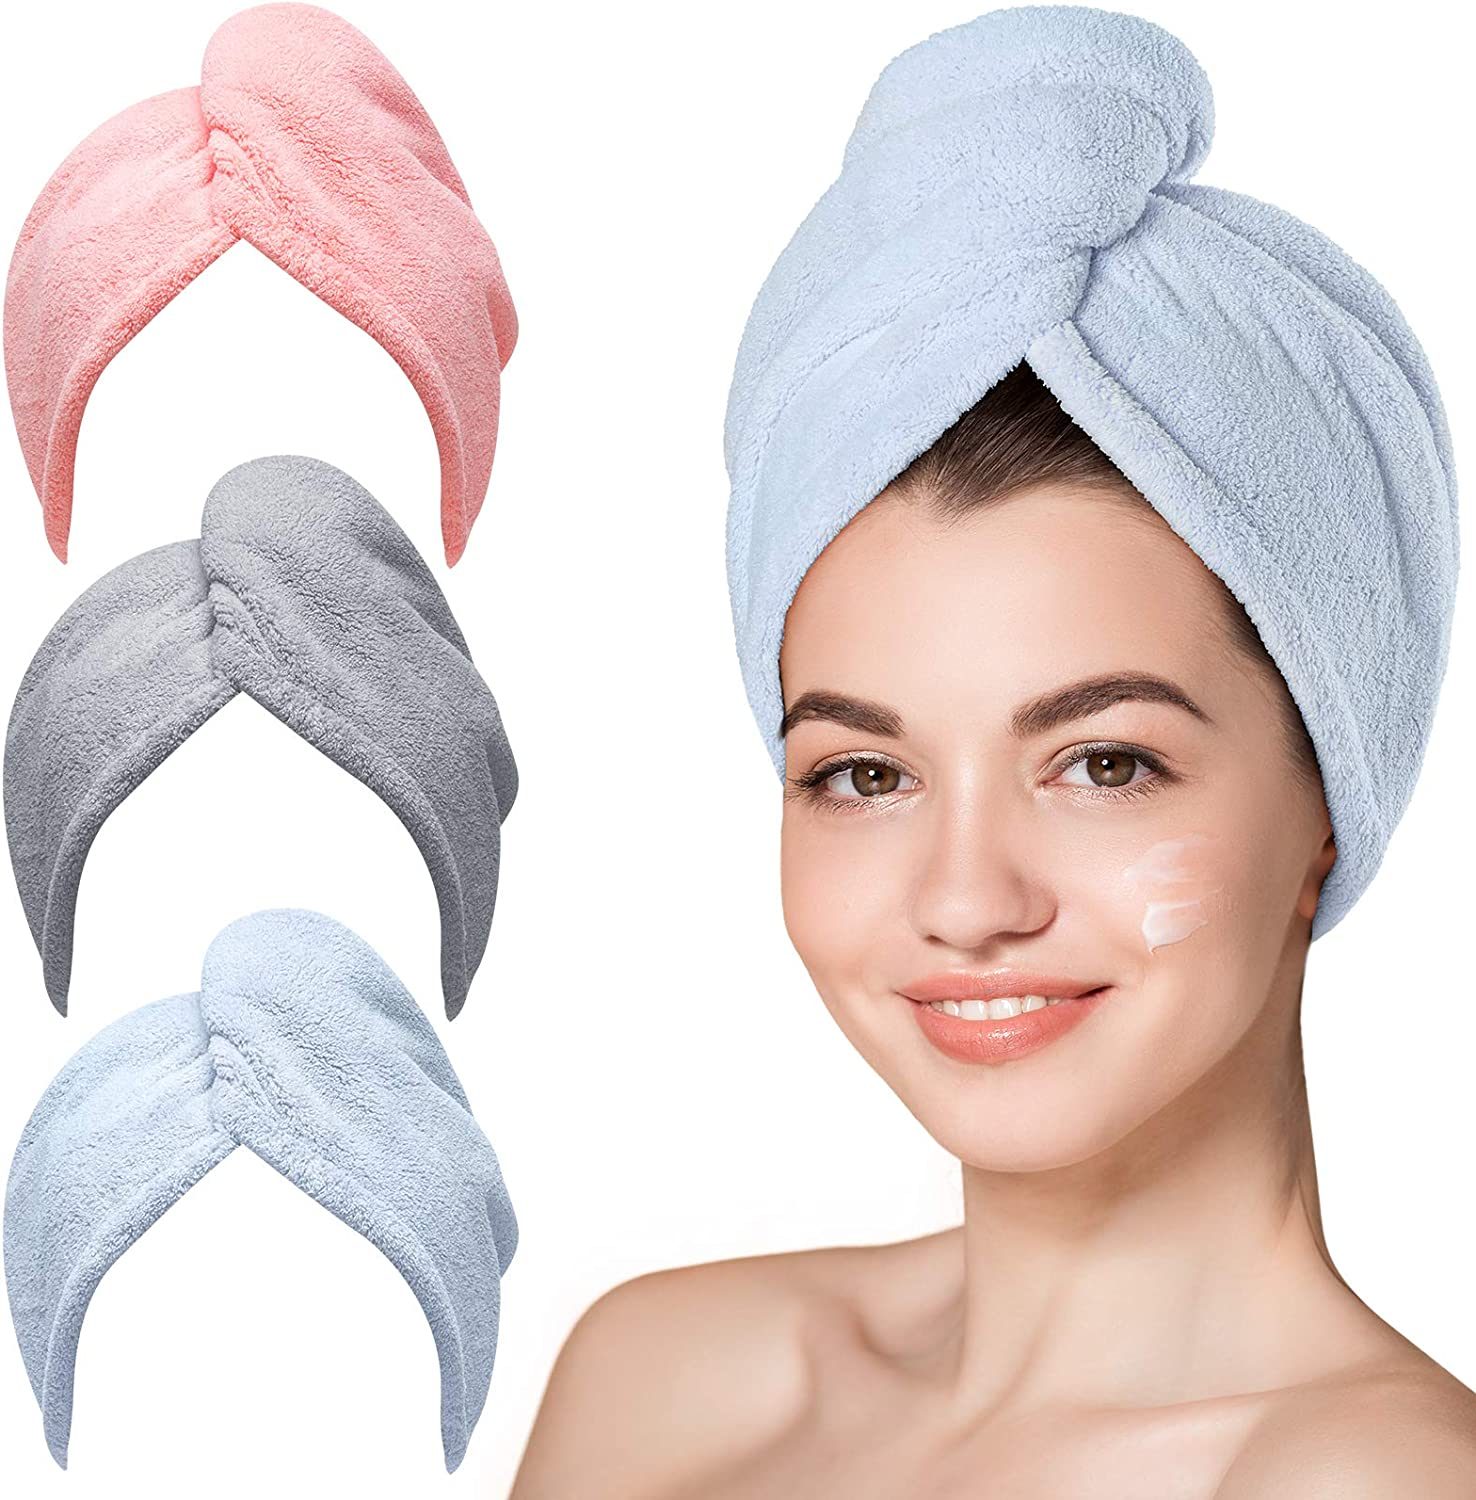 67% OFF of fixed price Microfiber Hair Towel Hicober 3 Turbans Packs Wet Houston Mall for